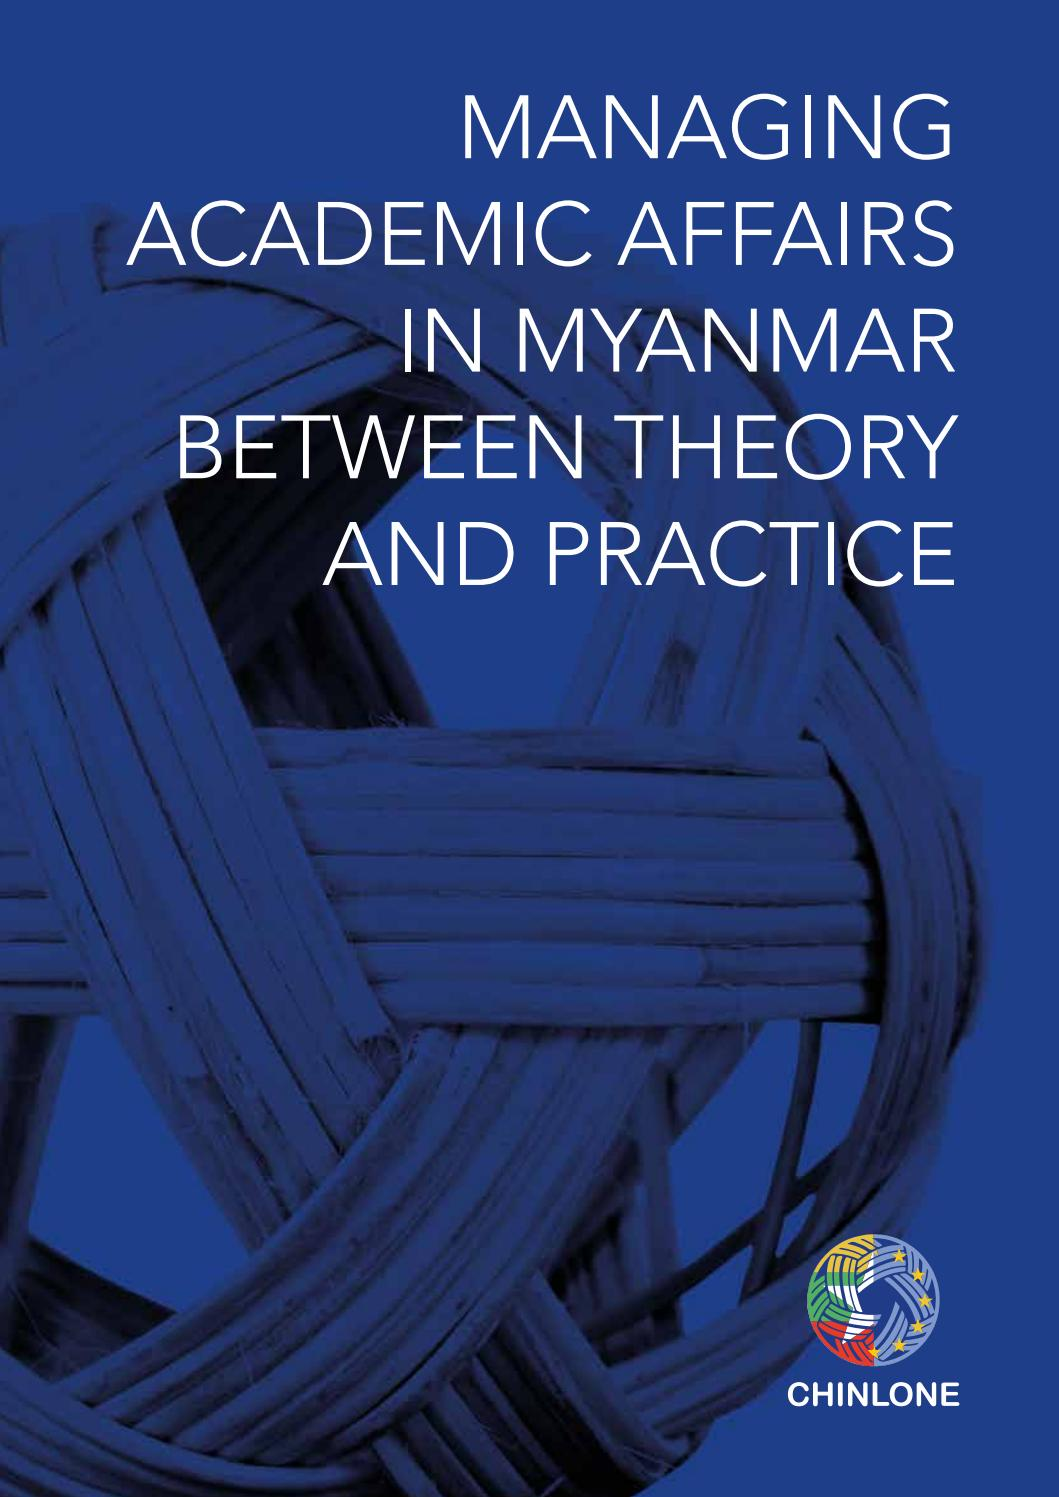 MANAGING ACADEMIC AFFAIRS IN MYANMAR BETWEEN THEORY AND PRACTICE by